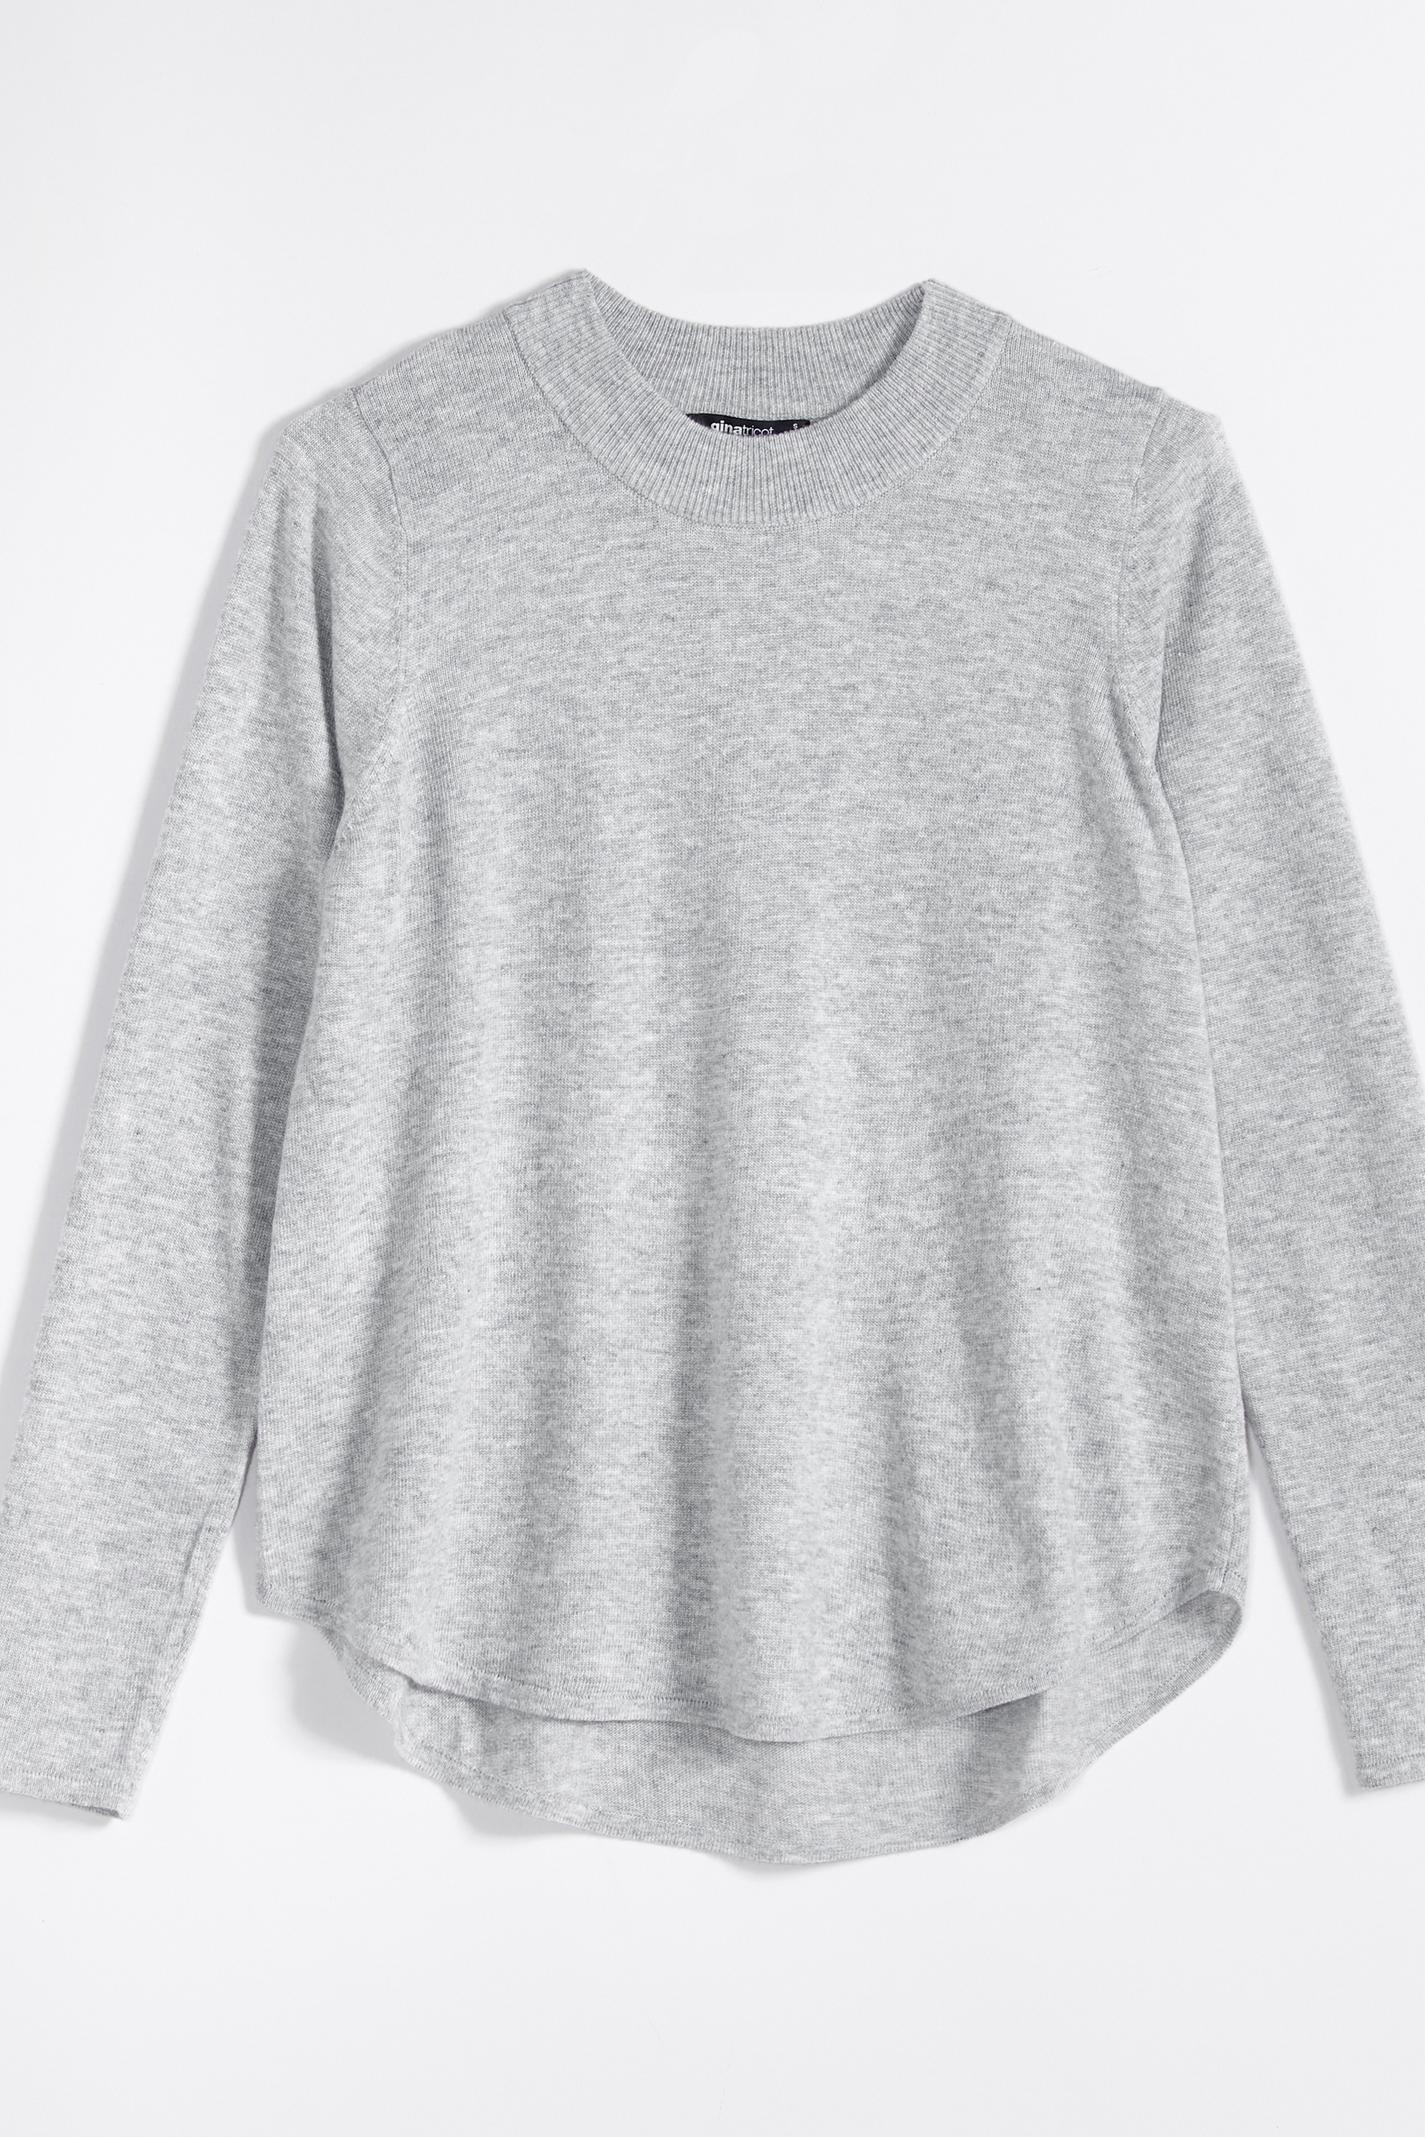 knitted sweaters love knitted sweater grey; love knitted sweater grey ... khsrffl